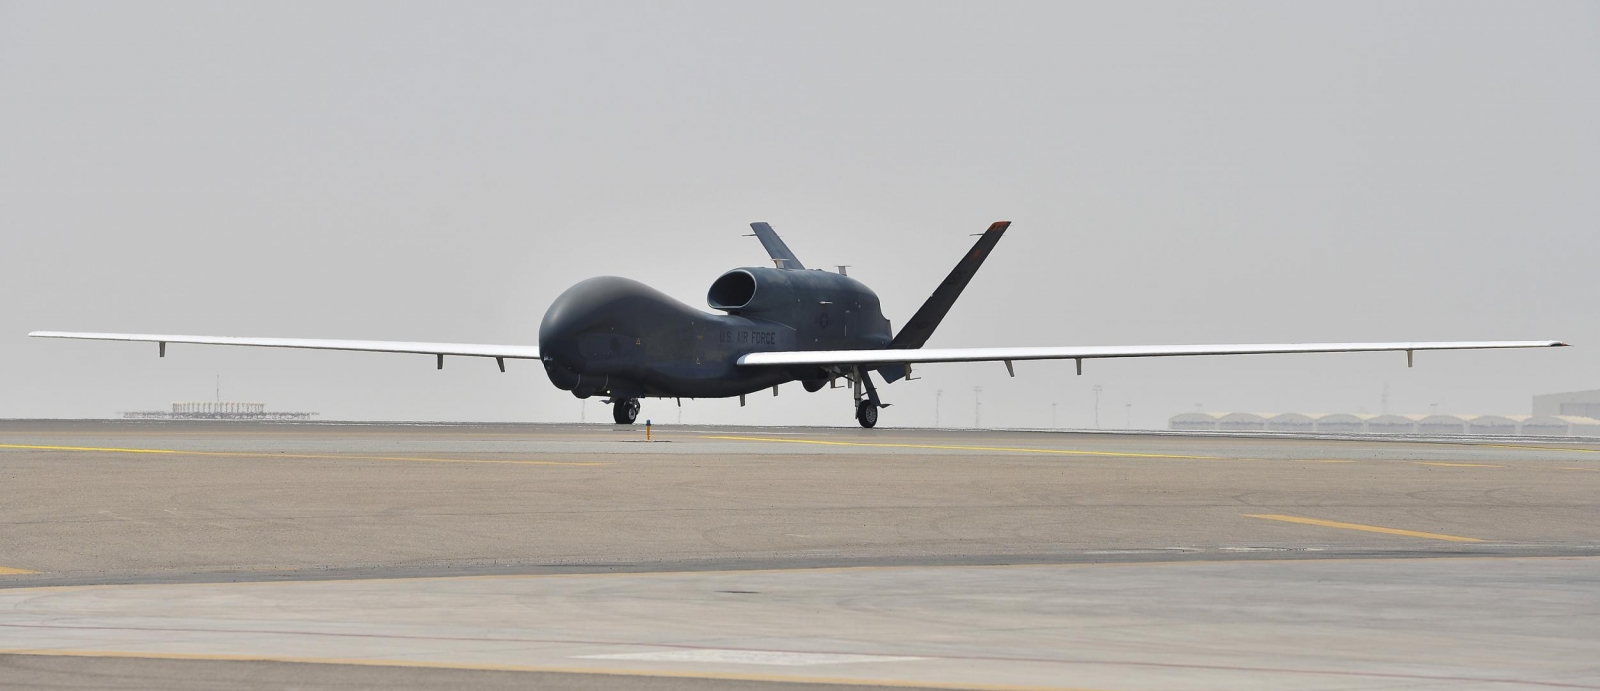 The Global Hawk remotely piloted aircraft is an example of an Air Force ISR asset that is evaluated by the ISR Systems & Architectures Group to understand existing capabilities and future needs.